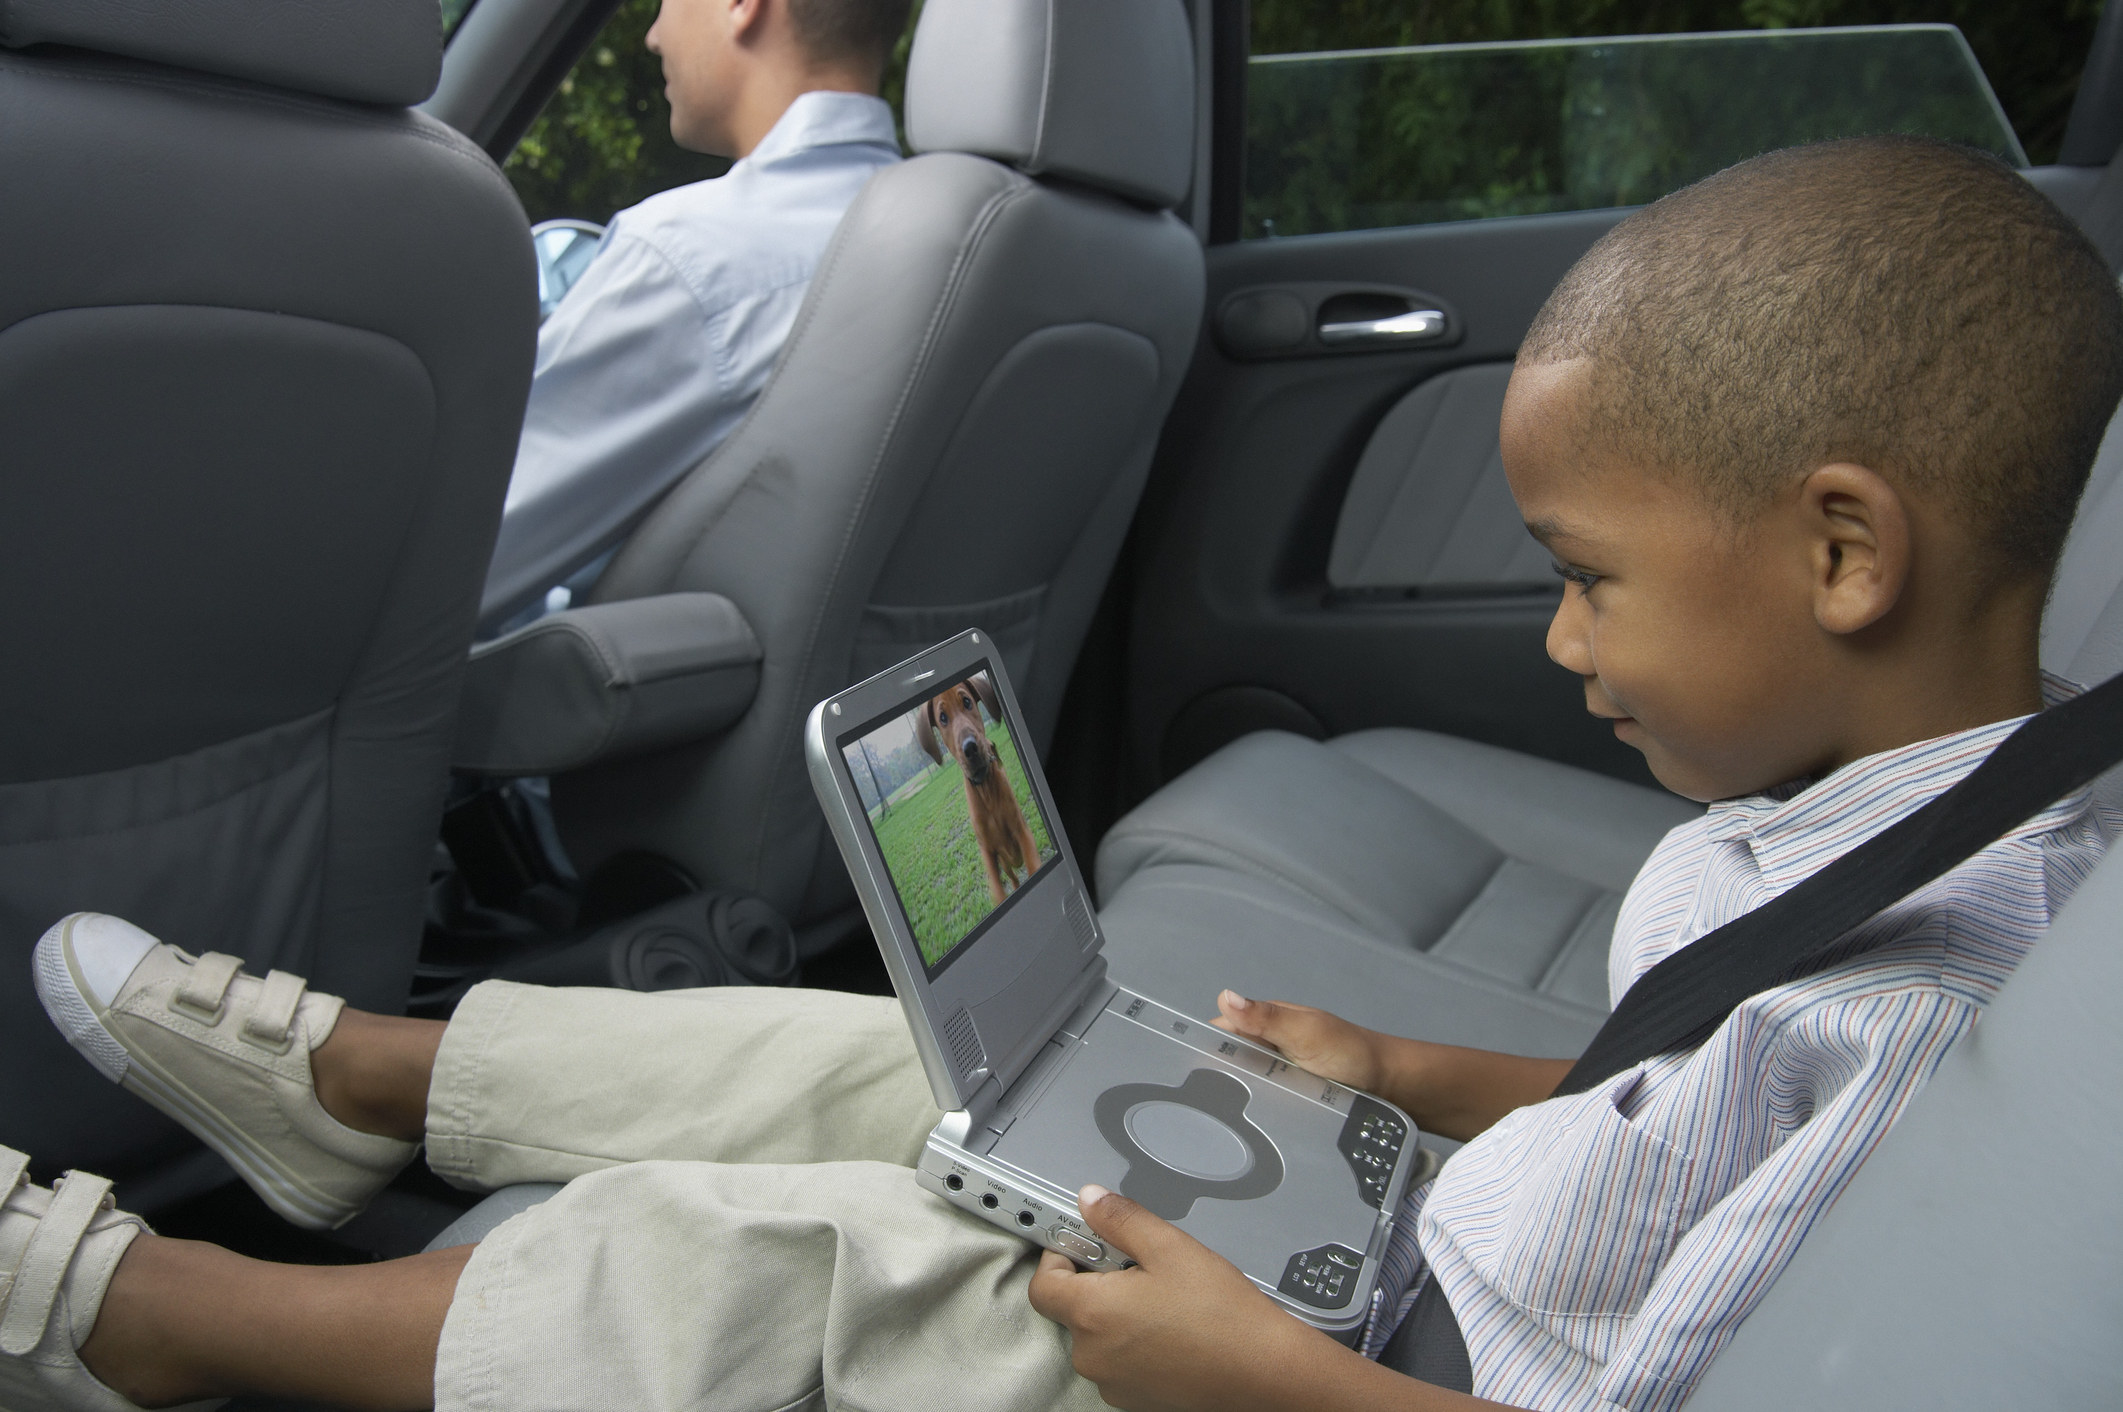 A kid sitting in the back of a car watching a video of a dog on a portable DVD player.